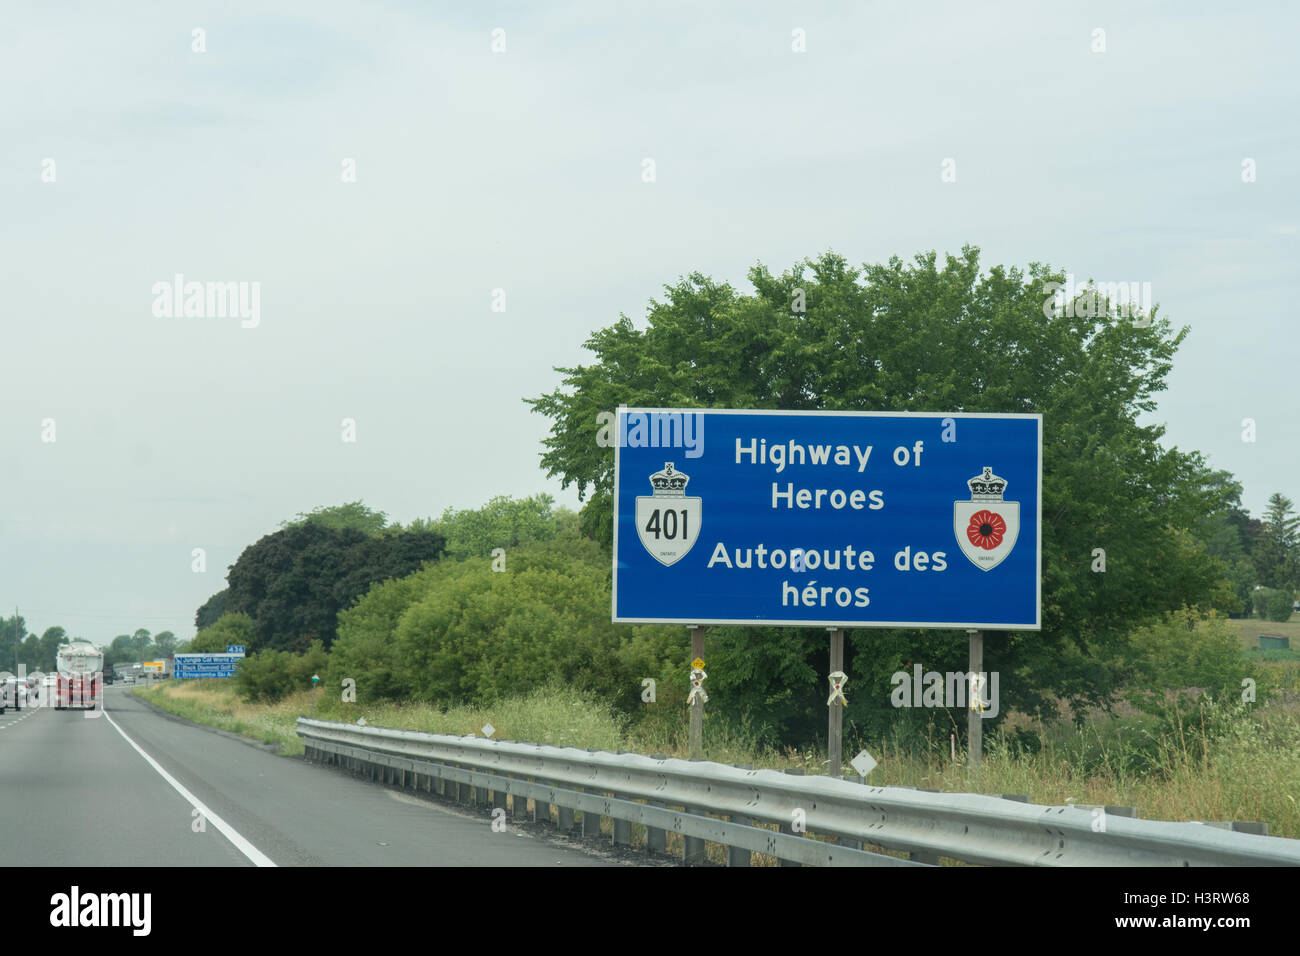 Highway of Heroes sign - to honour Canada's soldiers killed in Afghanistan, Highway 401, Ontario, Canada - Stock Image